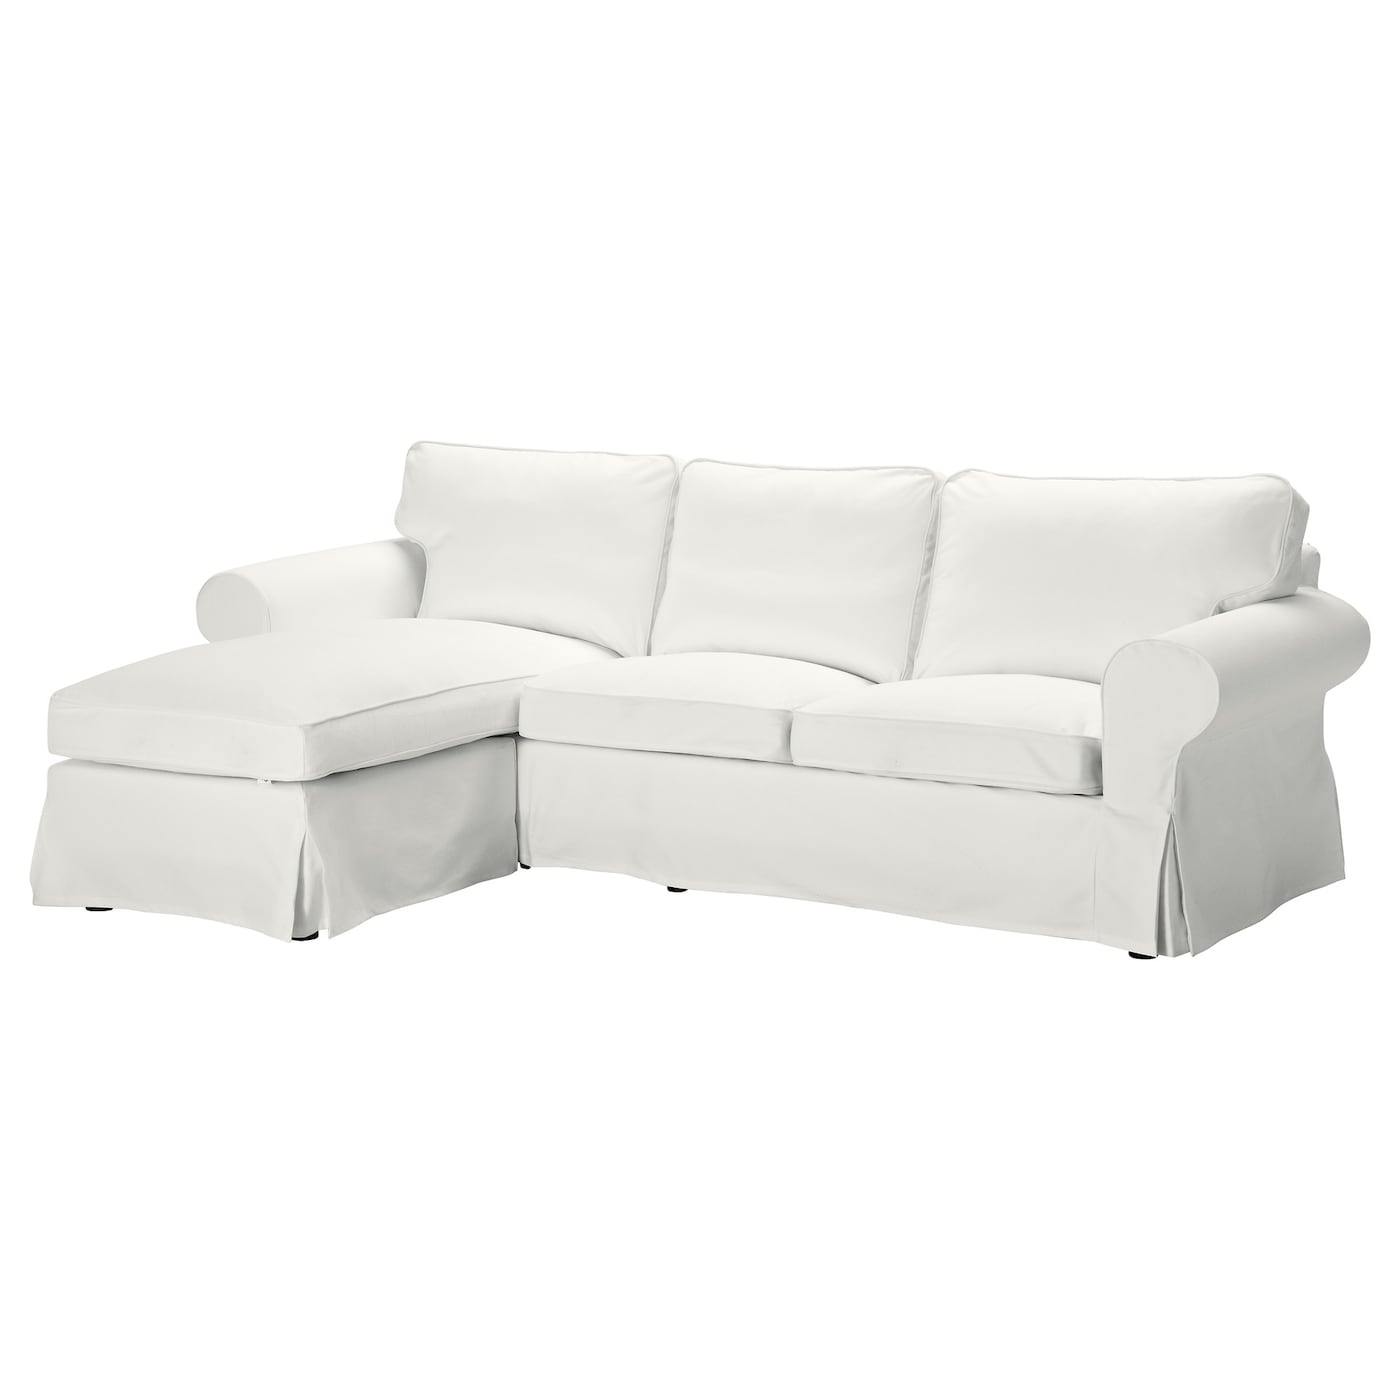 IKEA EKTORP cover two-seat sofa w chaise longue